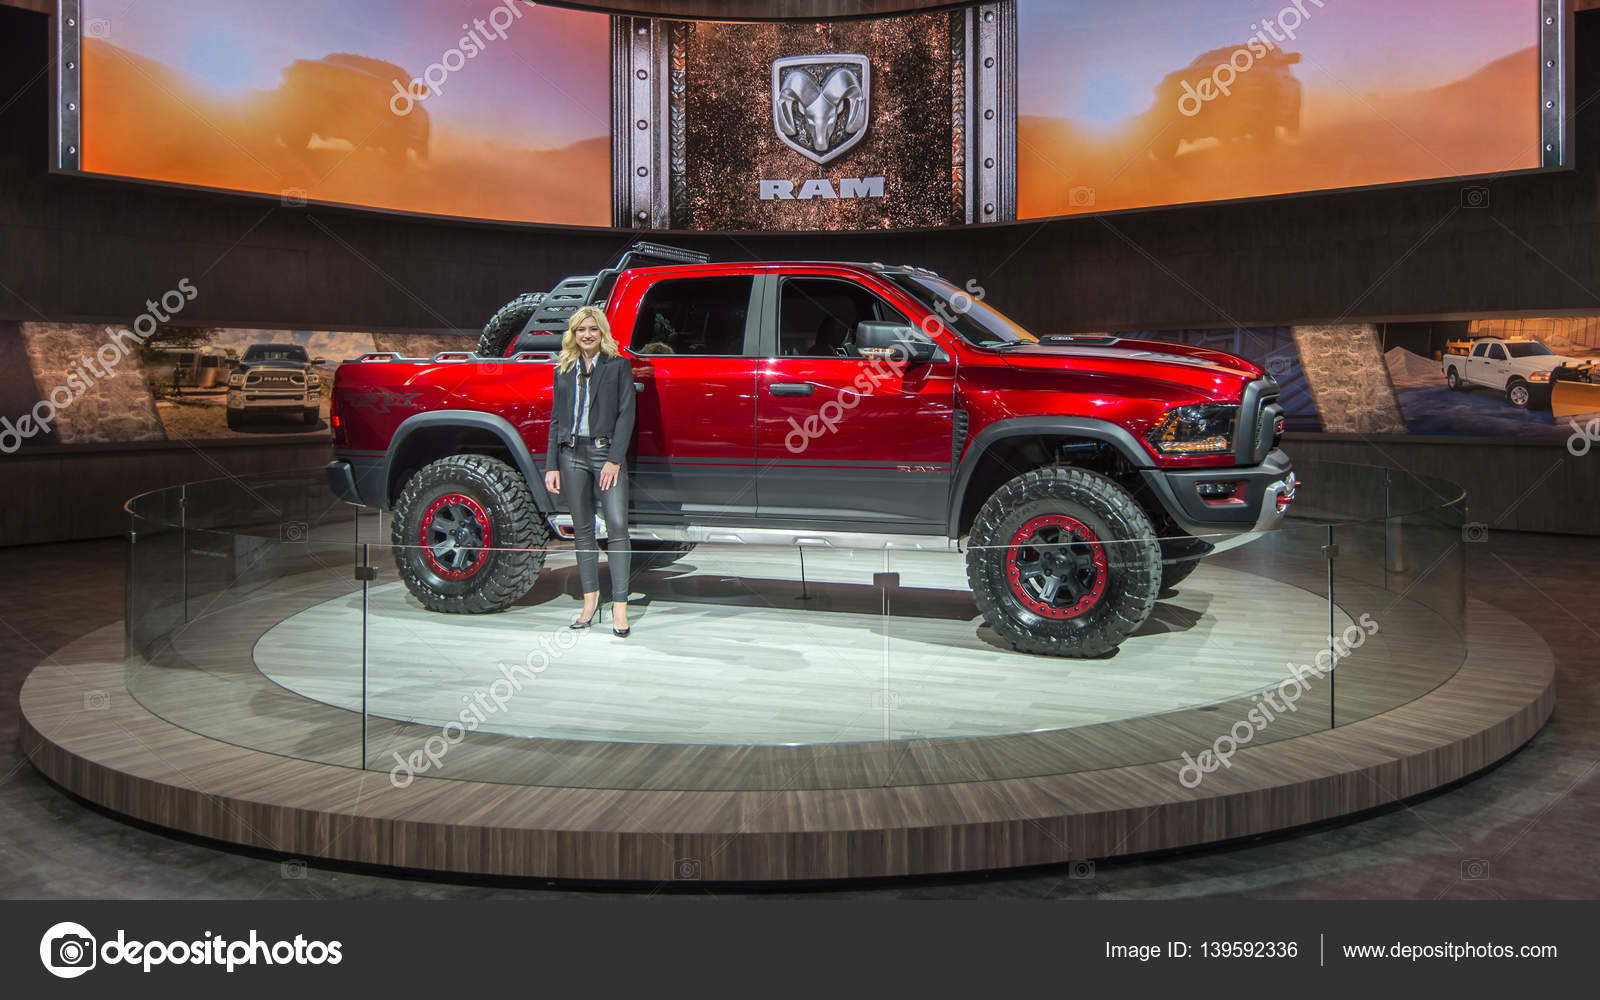 Ram Rebel Price >> Dodge RAM 1500 Hellcat Rebel TRX Concept – Stock Editorial Photo © slagreca@gmail.com #139592336